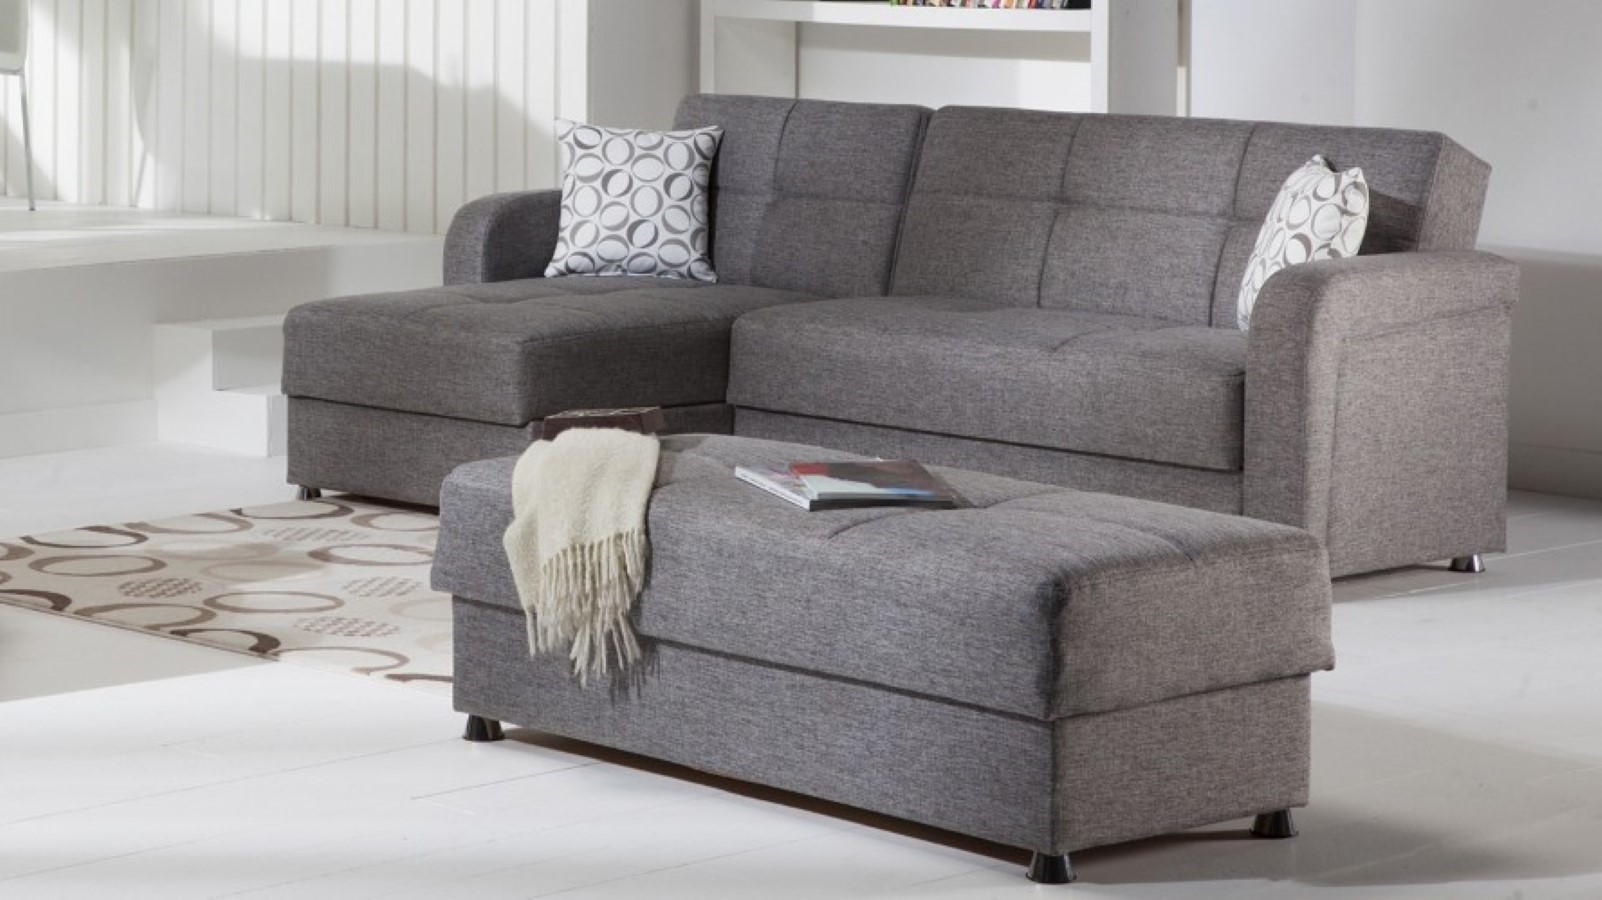 Gray sectional sofa with chaise luxurious furniture for Chaise designer